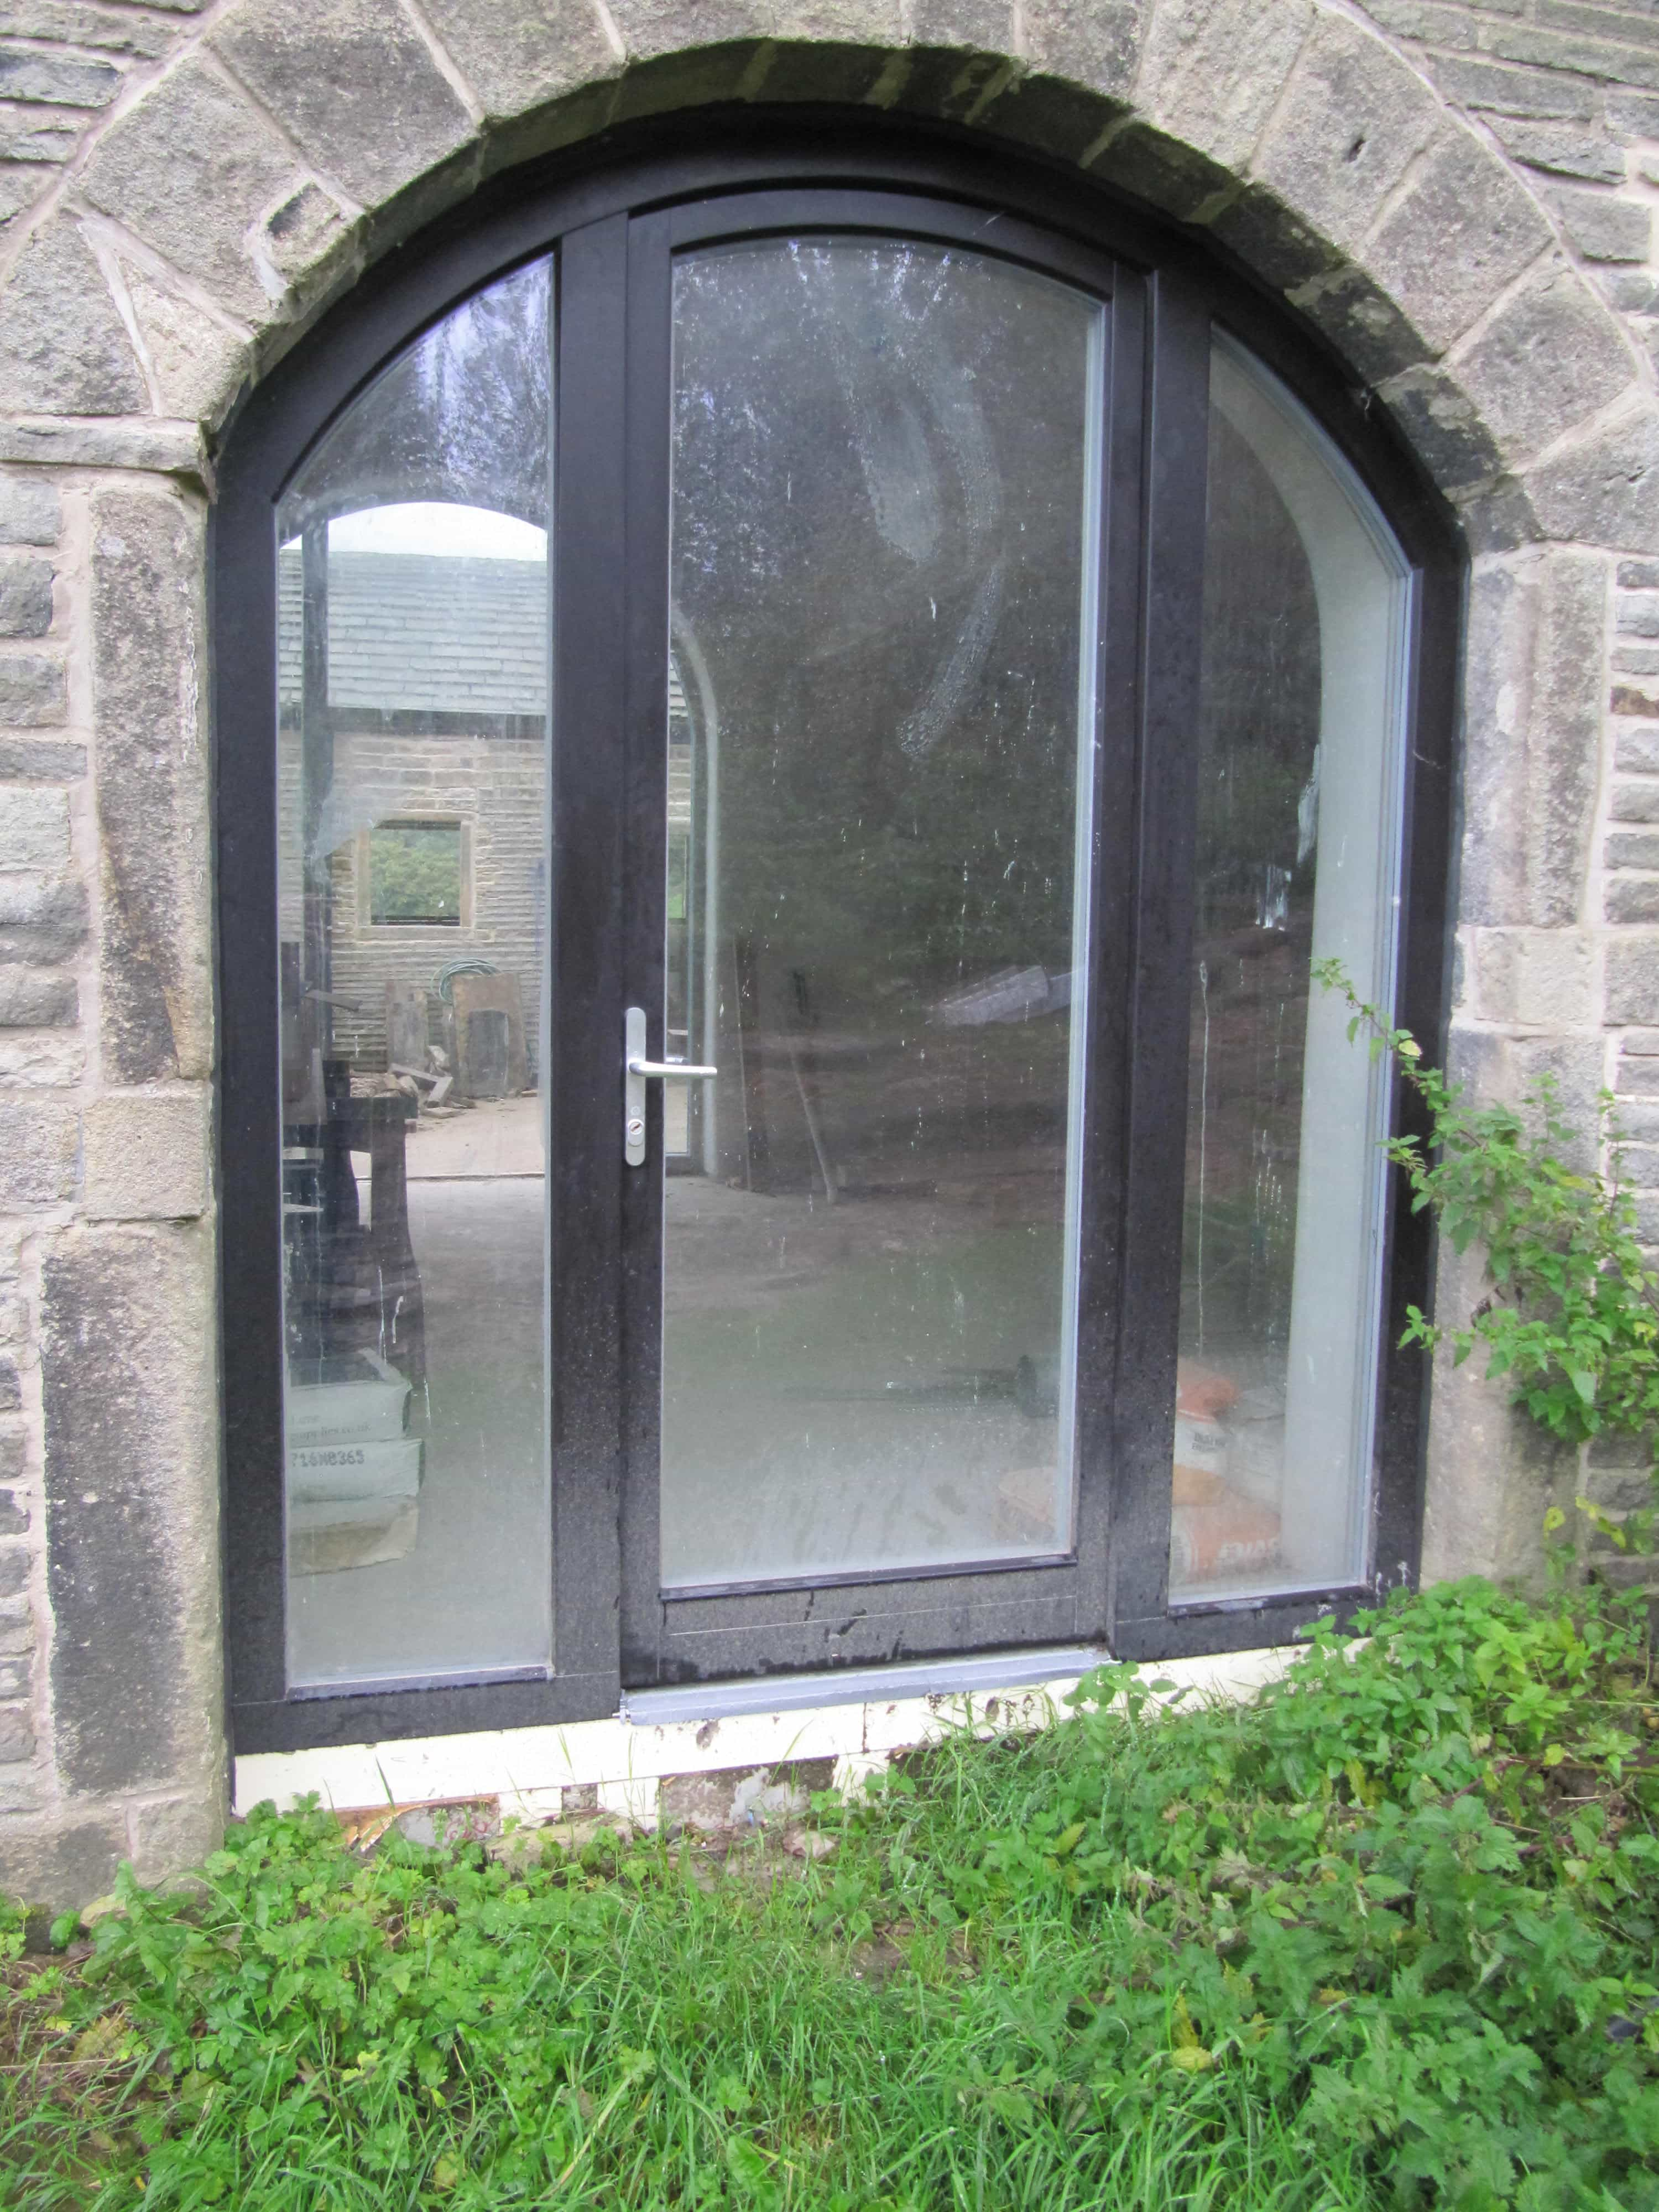 Blog on lower royd radical retrofit project green building for Retrofit windows